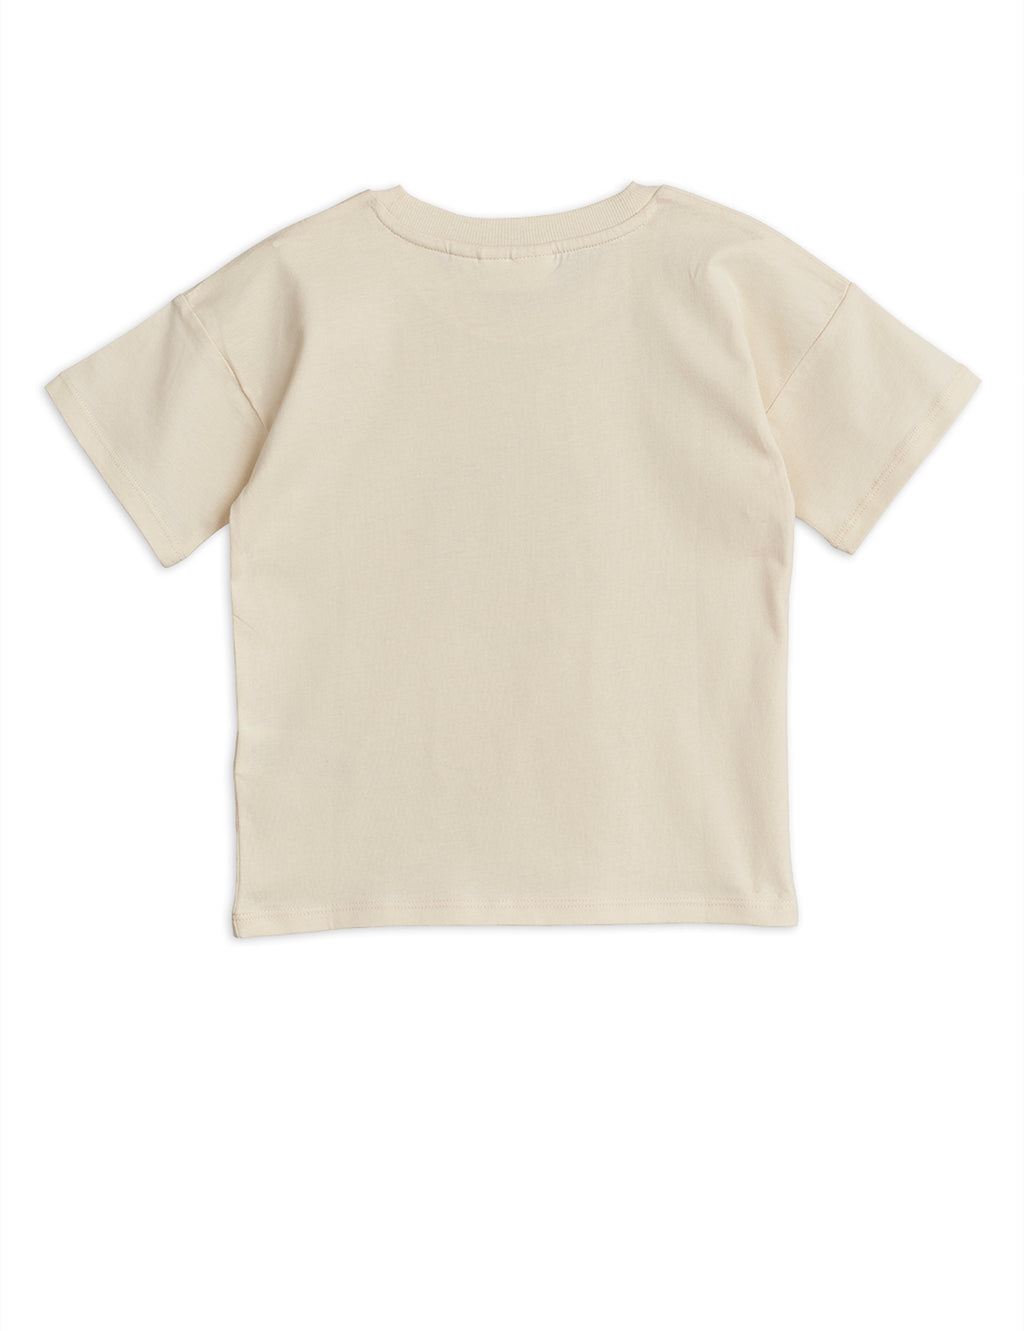 Beige Cotton T-Shirt